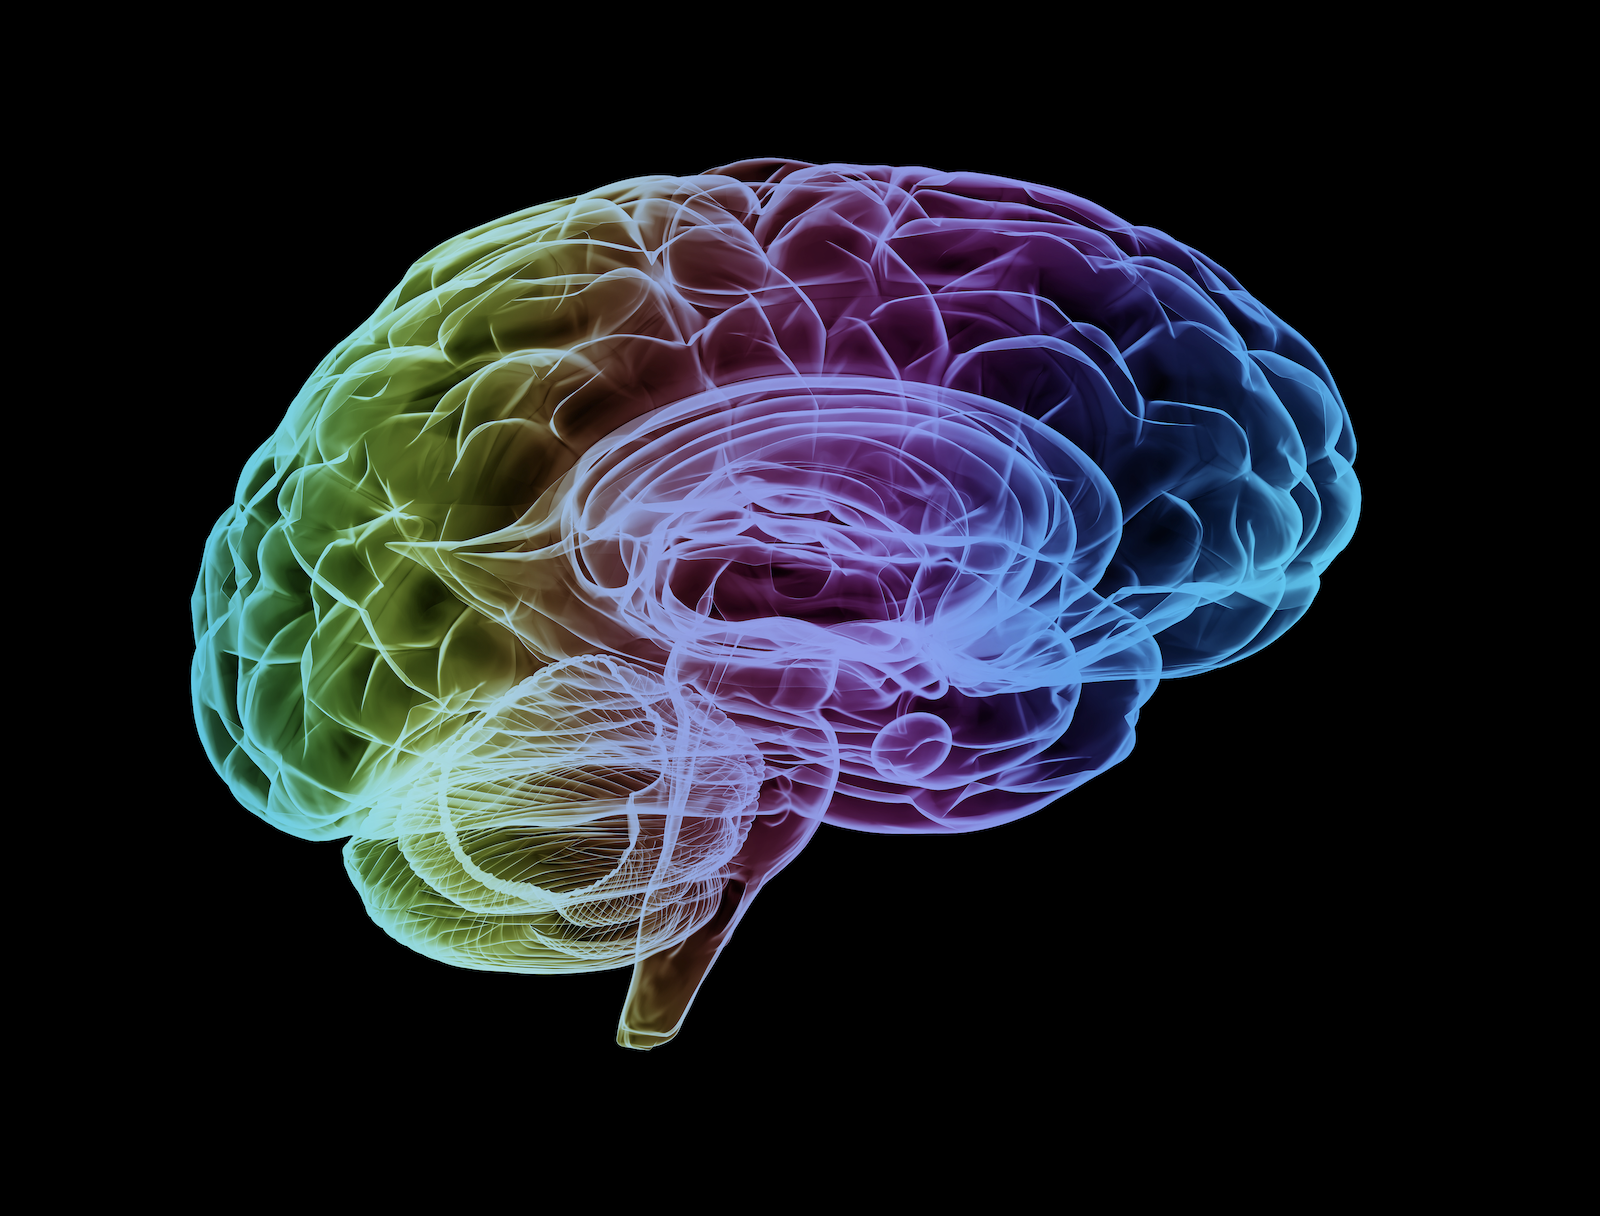 colorful illustration of the brain